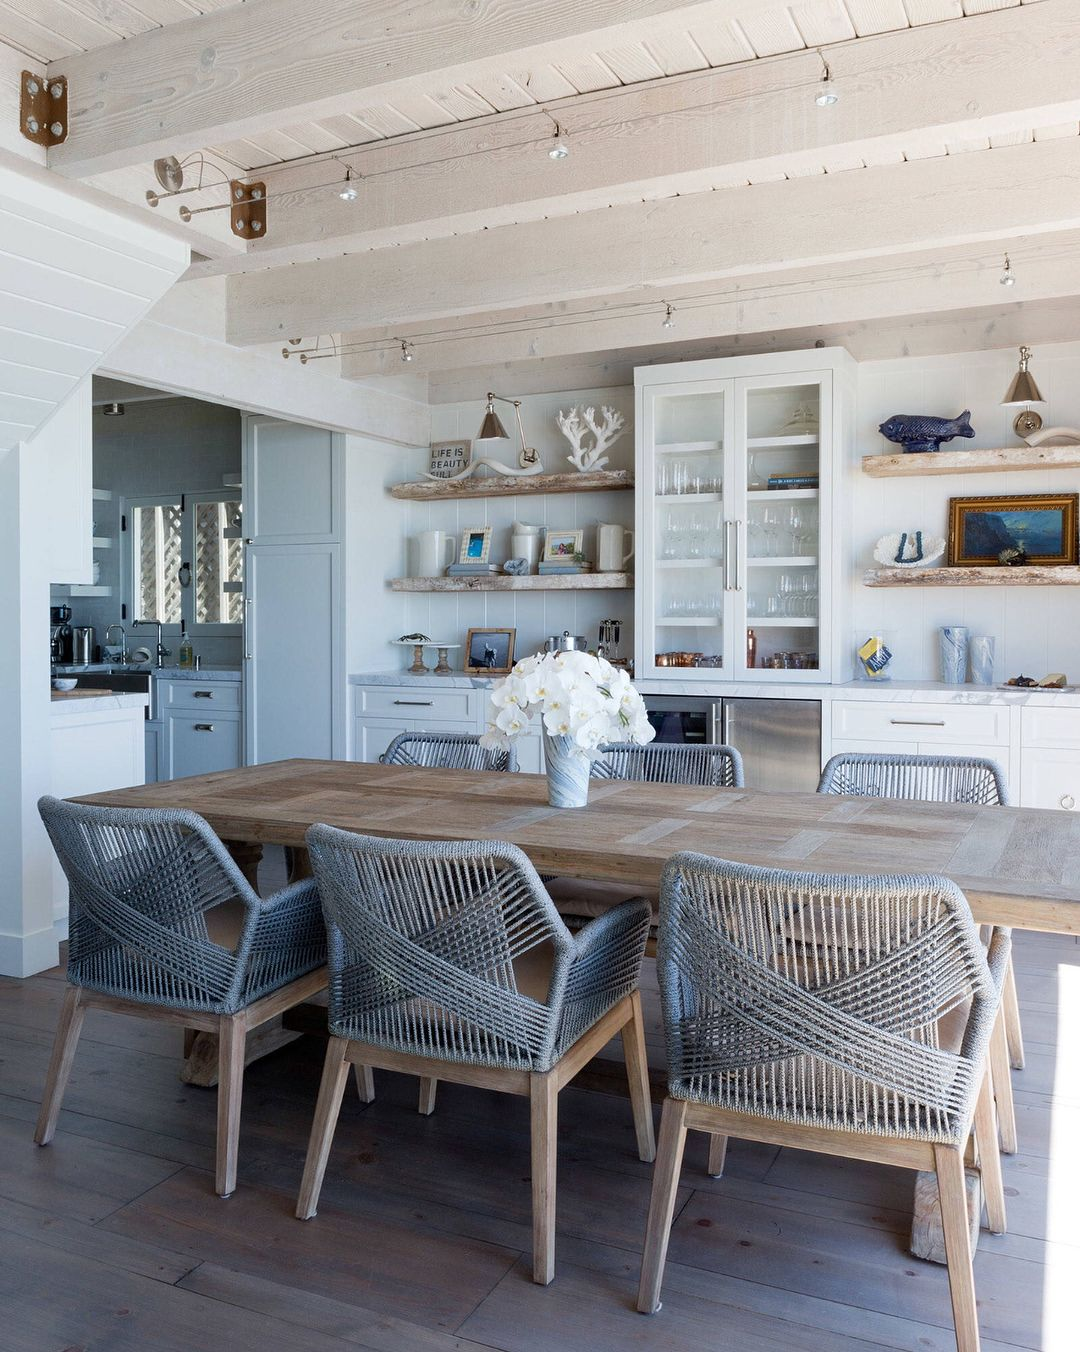 2 266 Likes 48 Comments Coastal Interiors Coastalinteriors On Instagram Not A Bad View For Breakfas Beach Dining Room Dining Room Cozy Open Dining Room